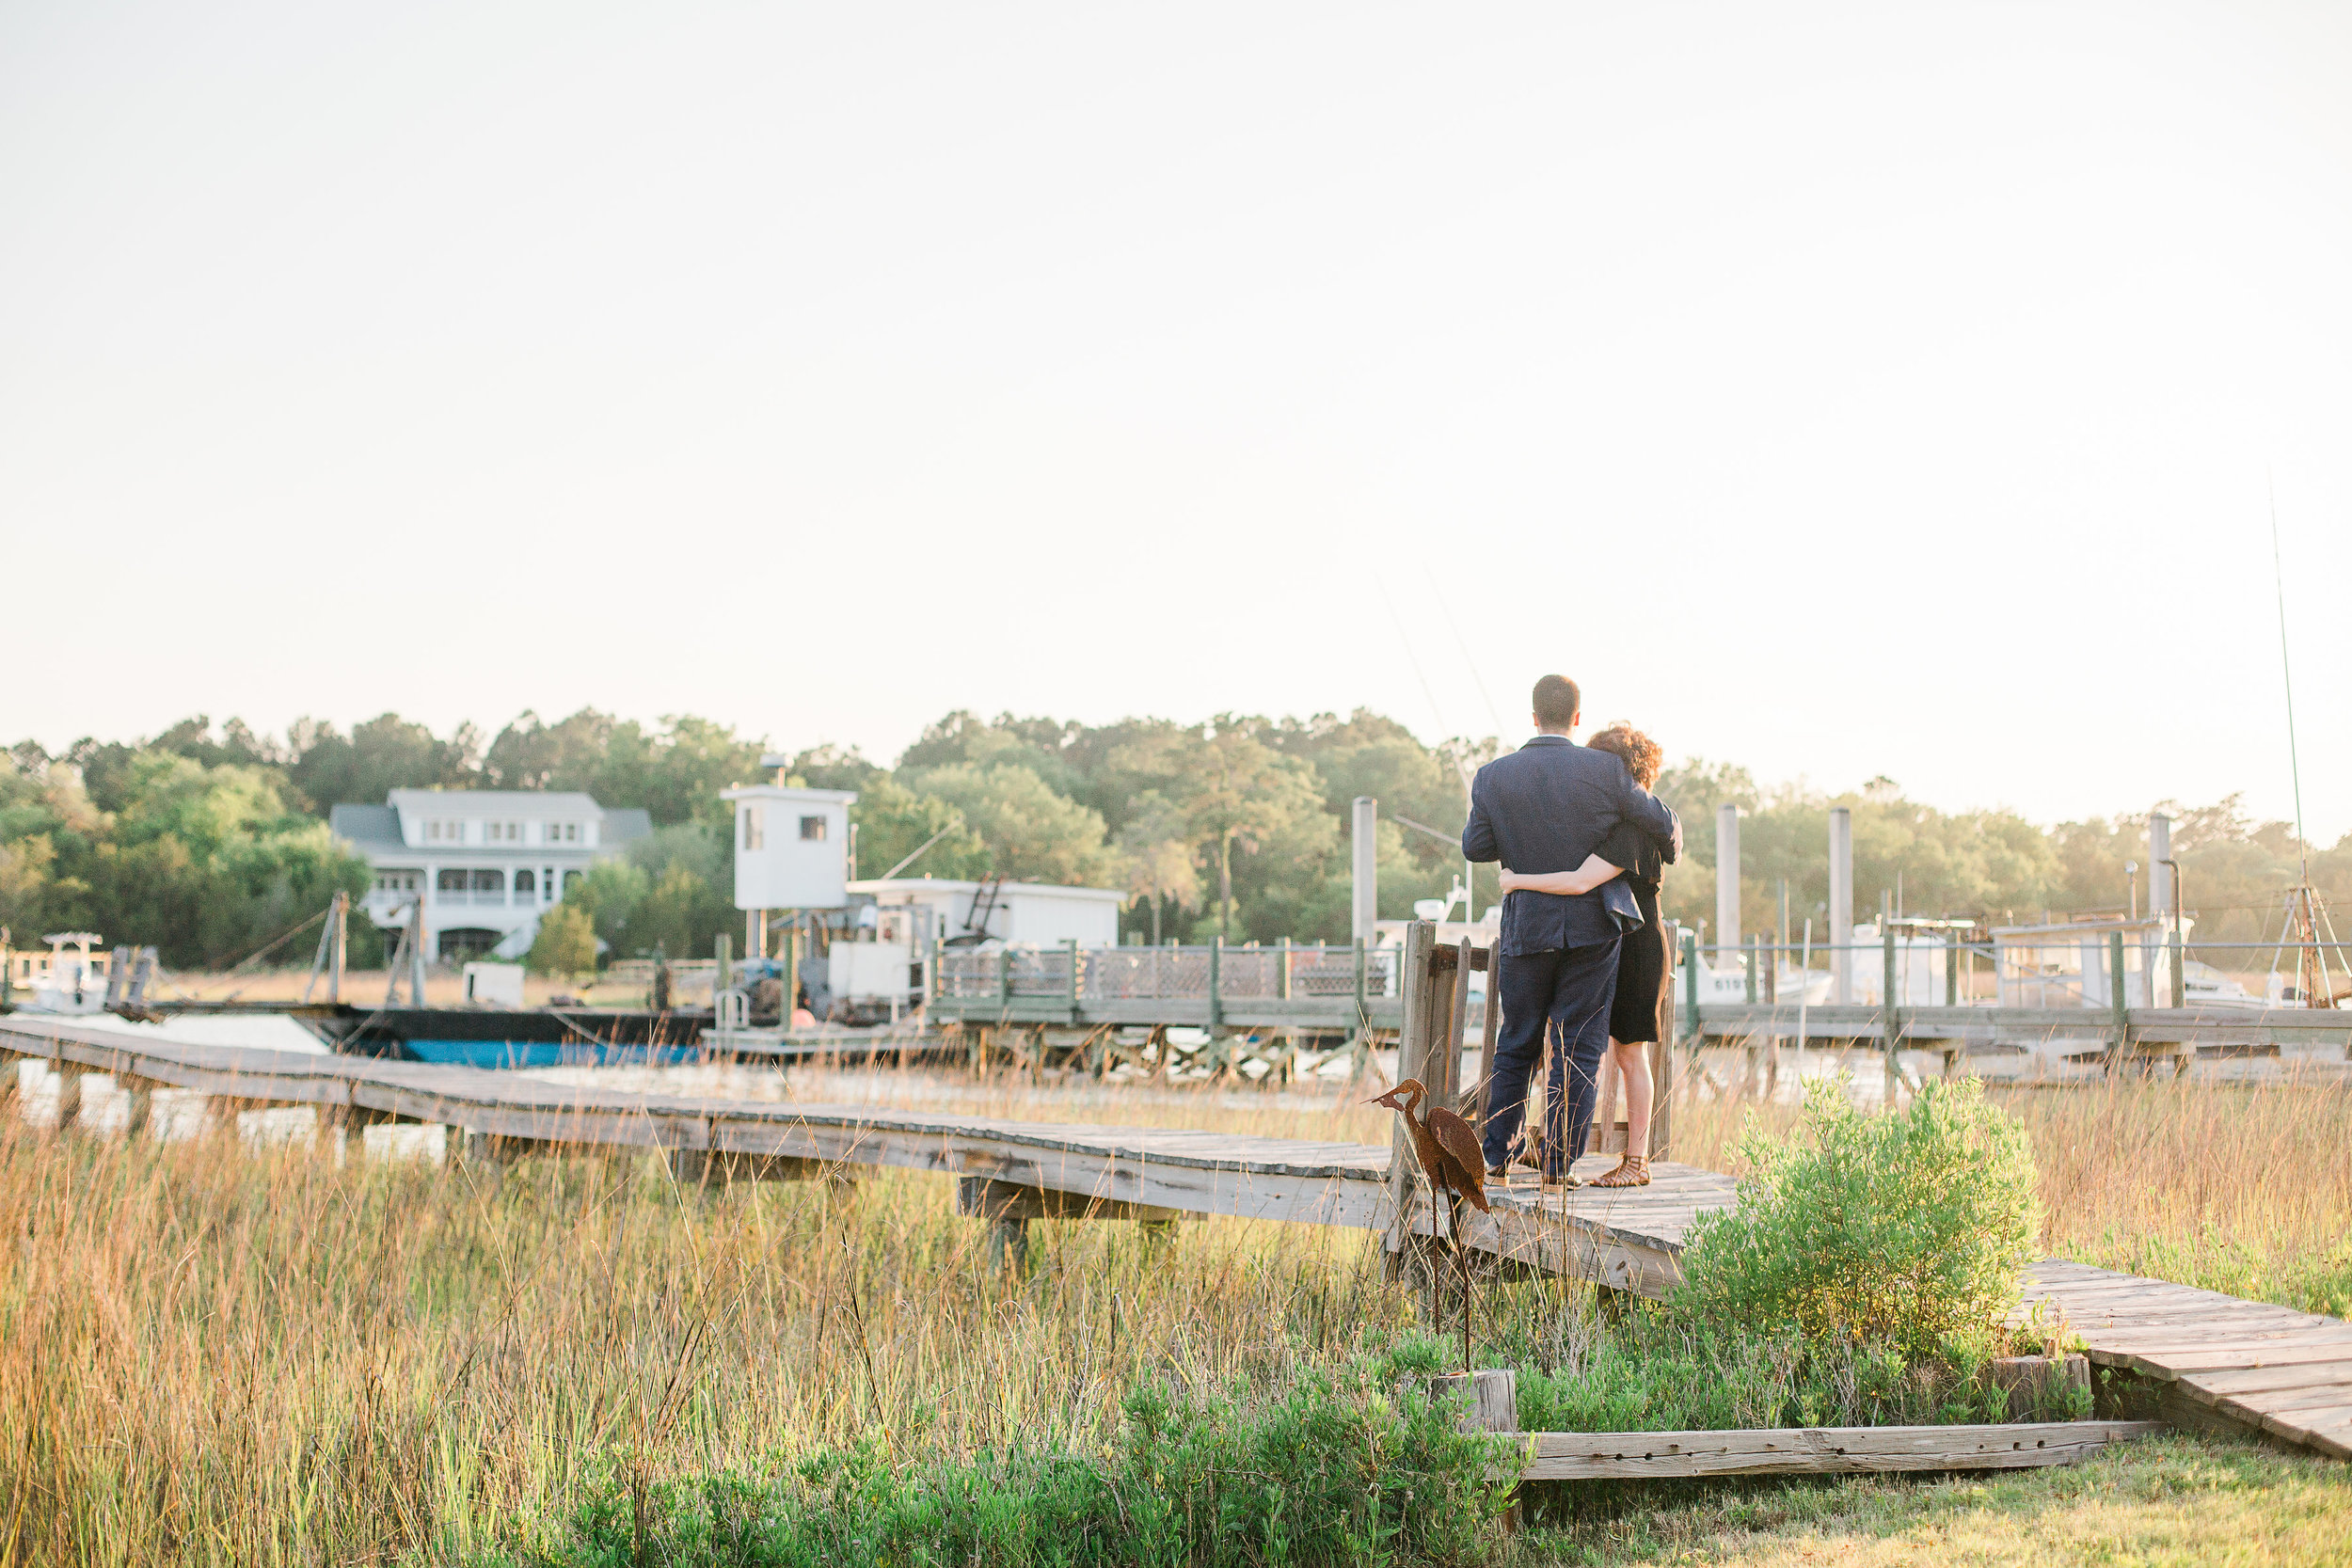 Sunsets are always a yes! - We are big fans of chasing sunsets! Grab your person and find the perfect location to sit and enjoy the view!